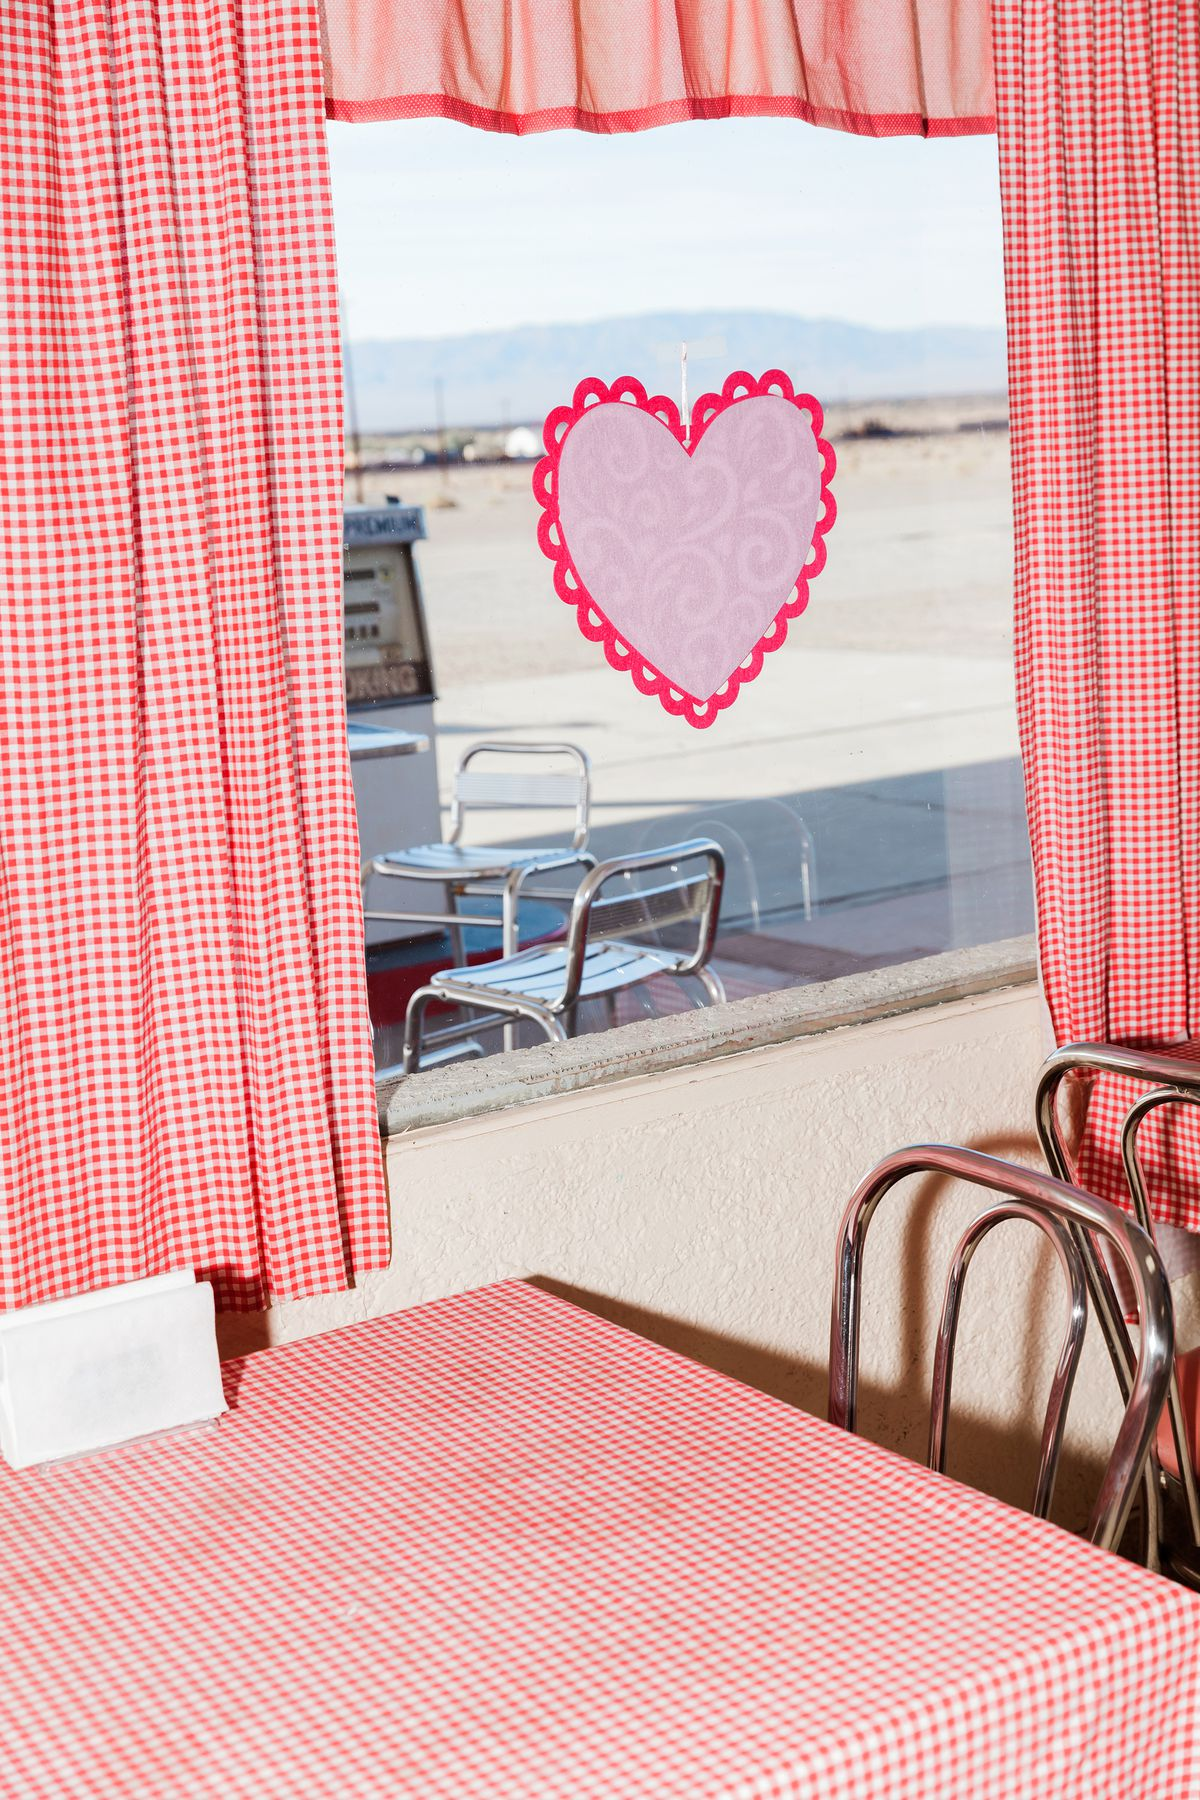 The interior of a diner. There is a table with a red and white checkered tablecloth and a chair. There are red and white checkered curtains. There is a paper heart on the window. The view outside is a desert.